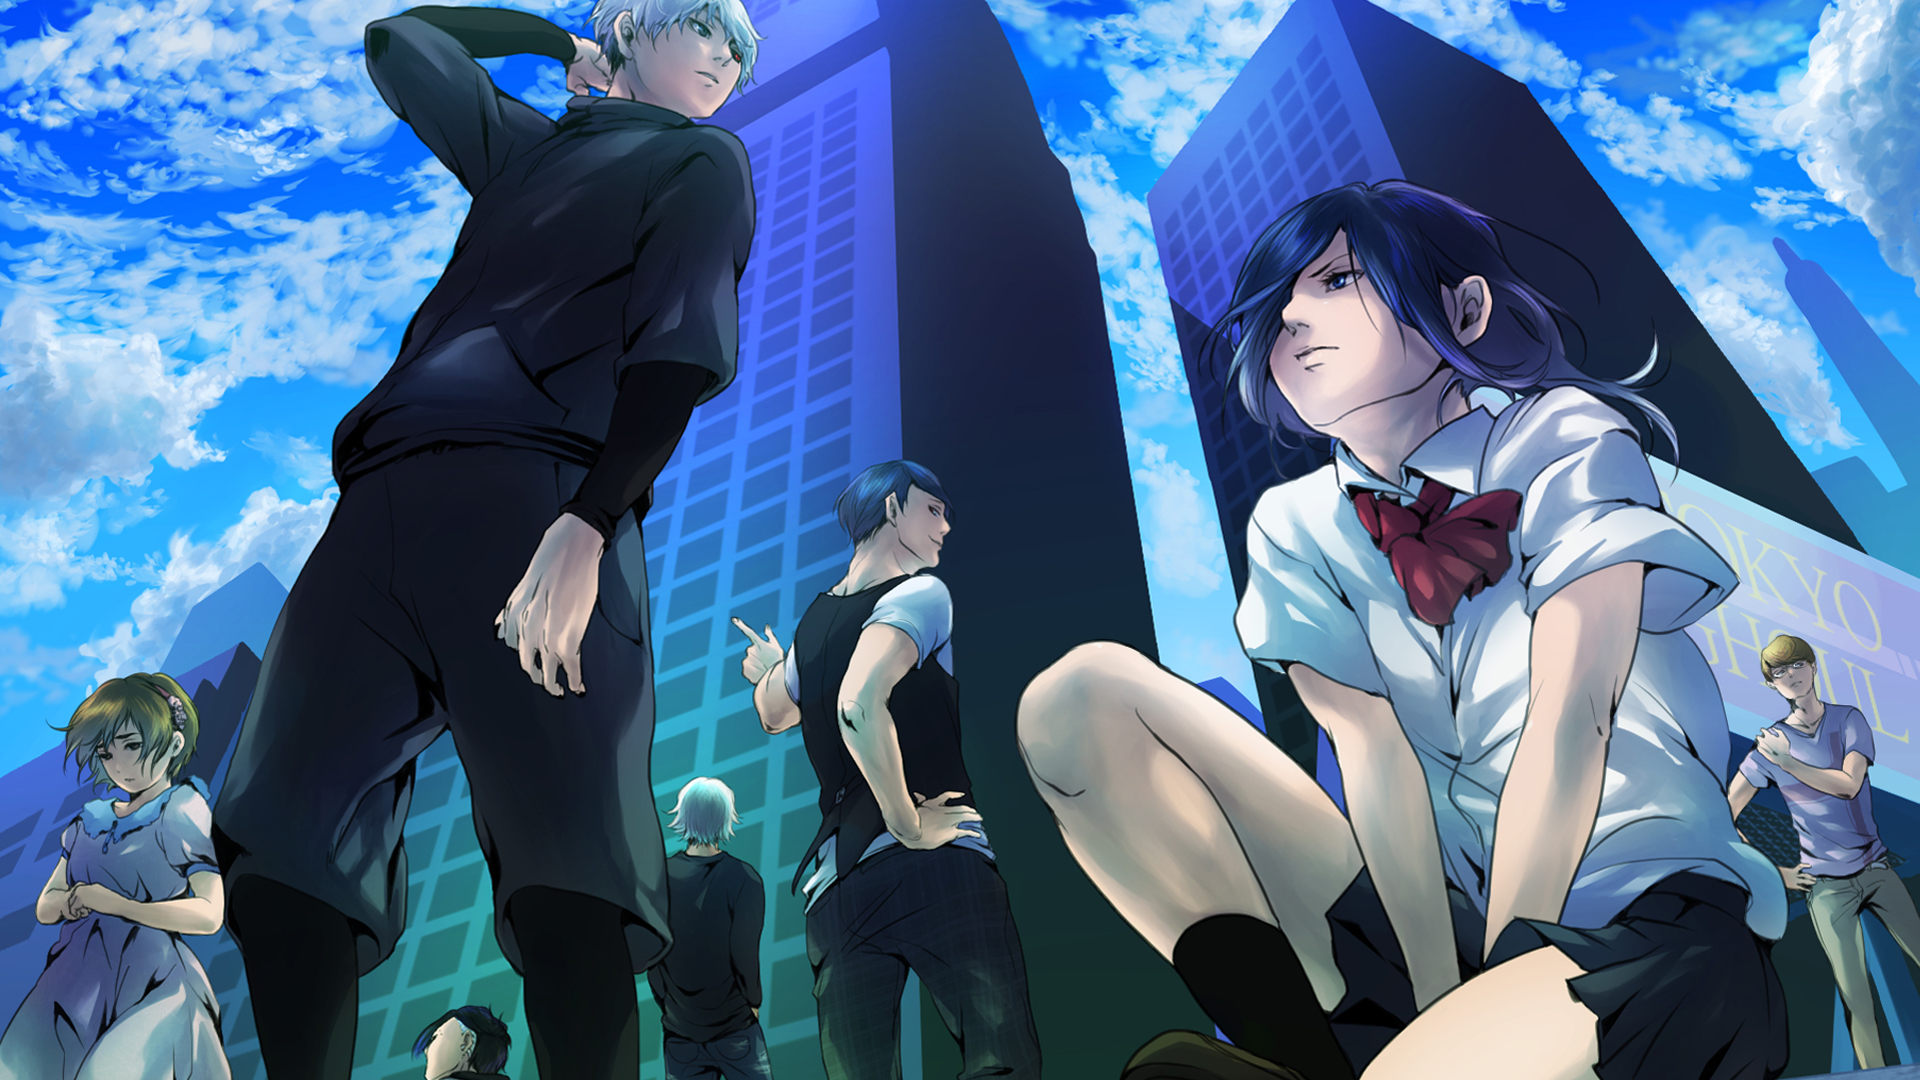 Tokyo Ghoul Anime Wallpapers Wallpaper Cave